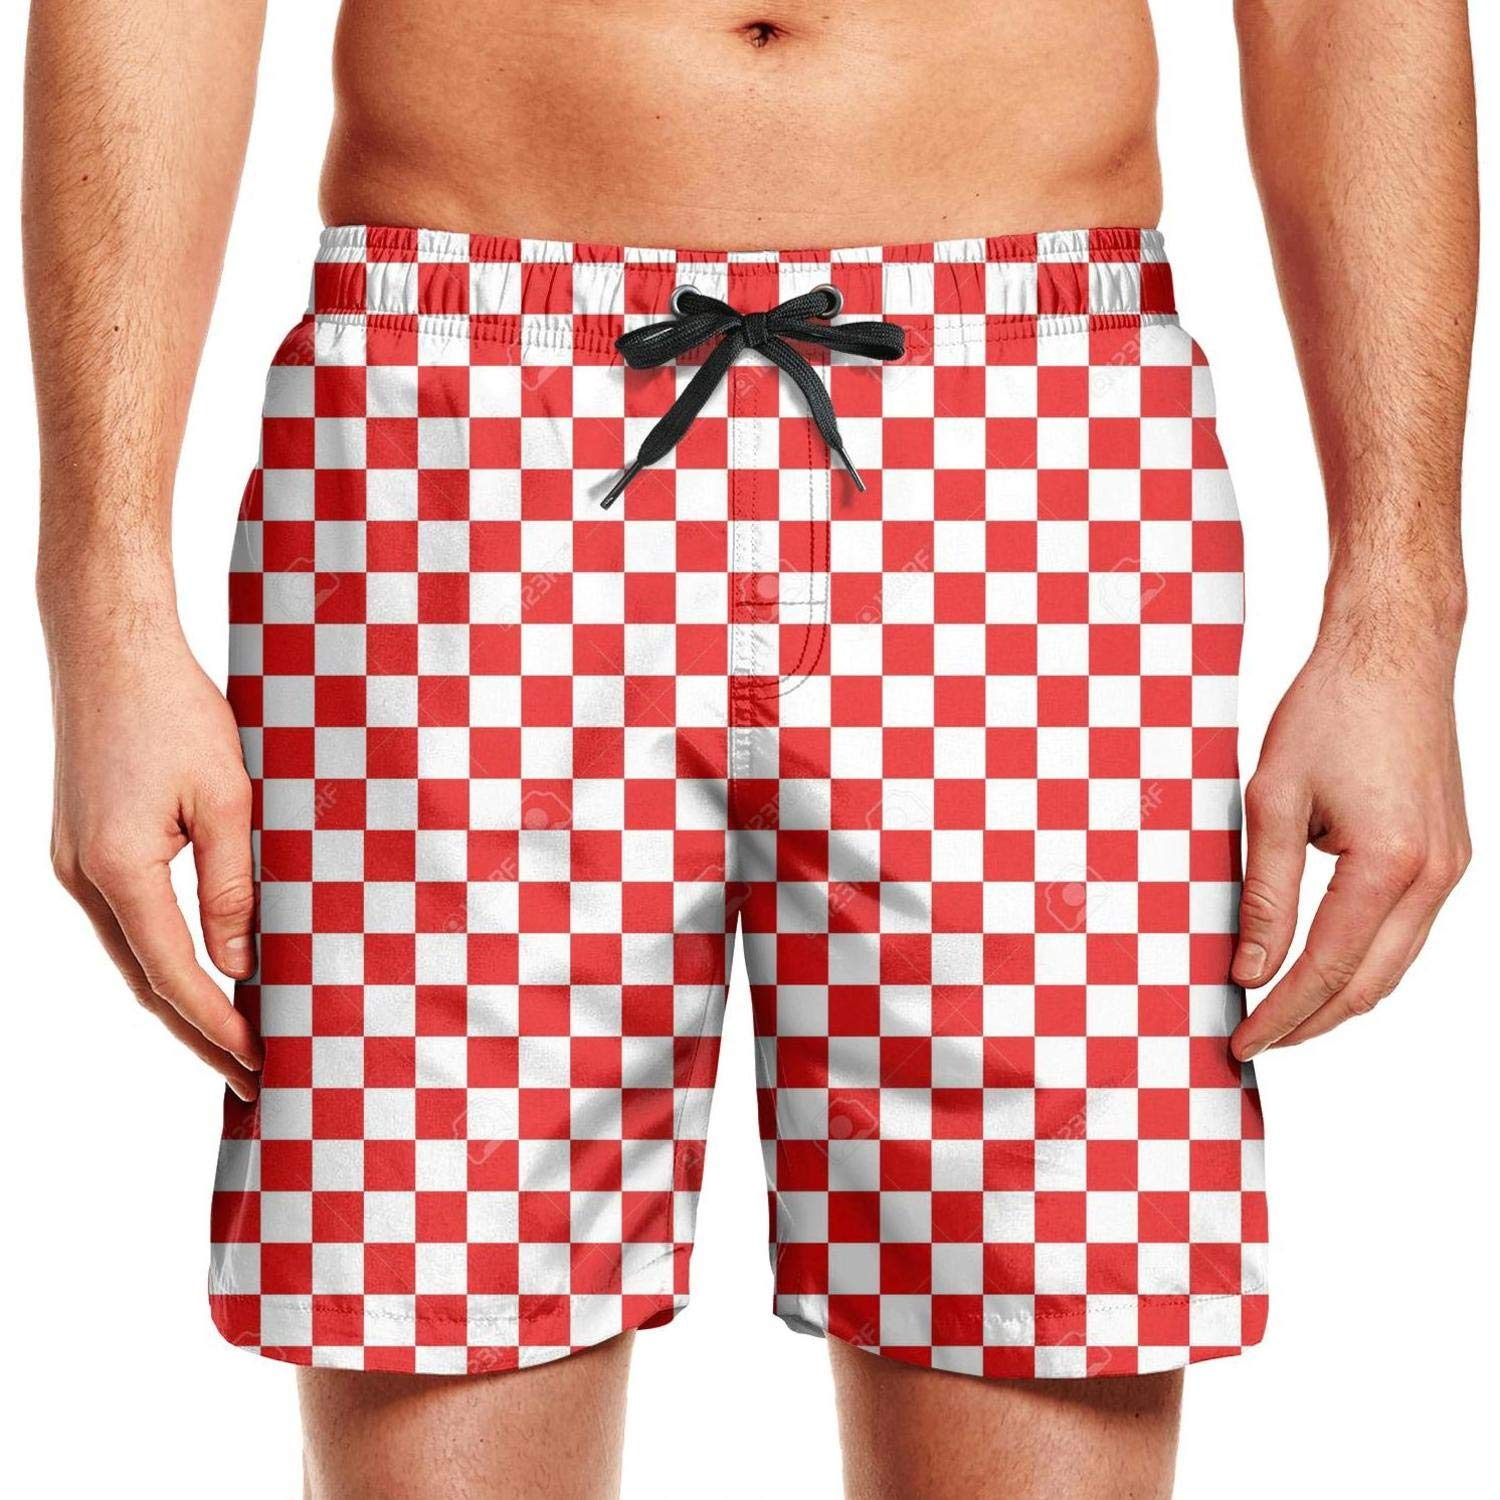 QDFGDFSDX Popular-Yellow-and-Blue-Checkered Casual Beach Shorts Watersports Breathable Men